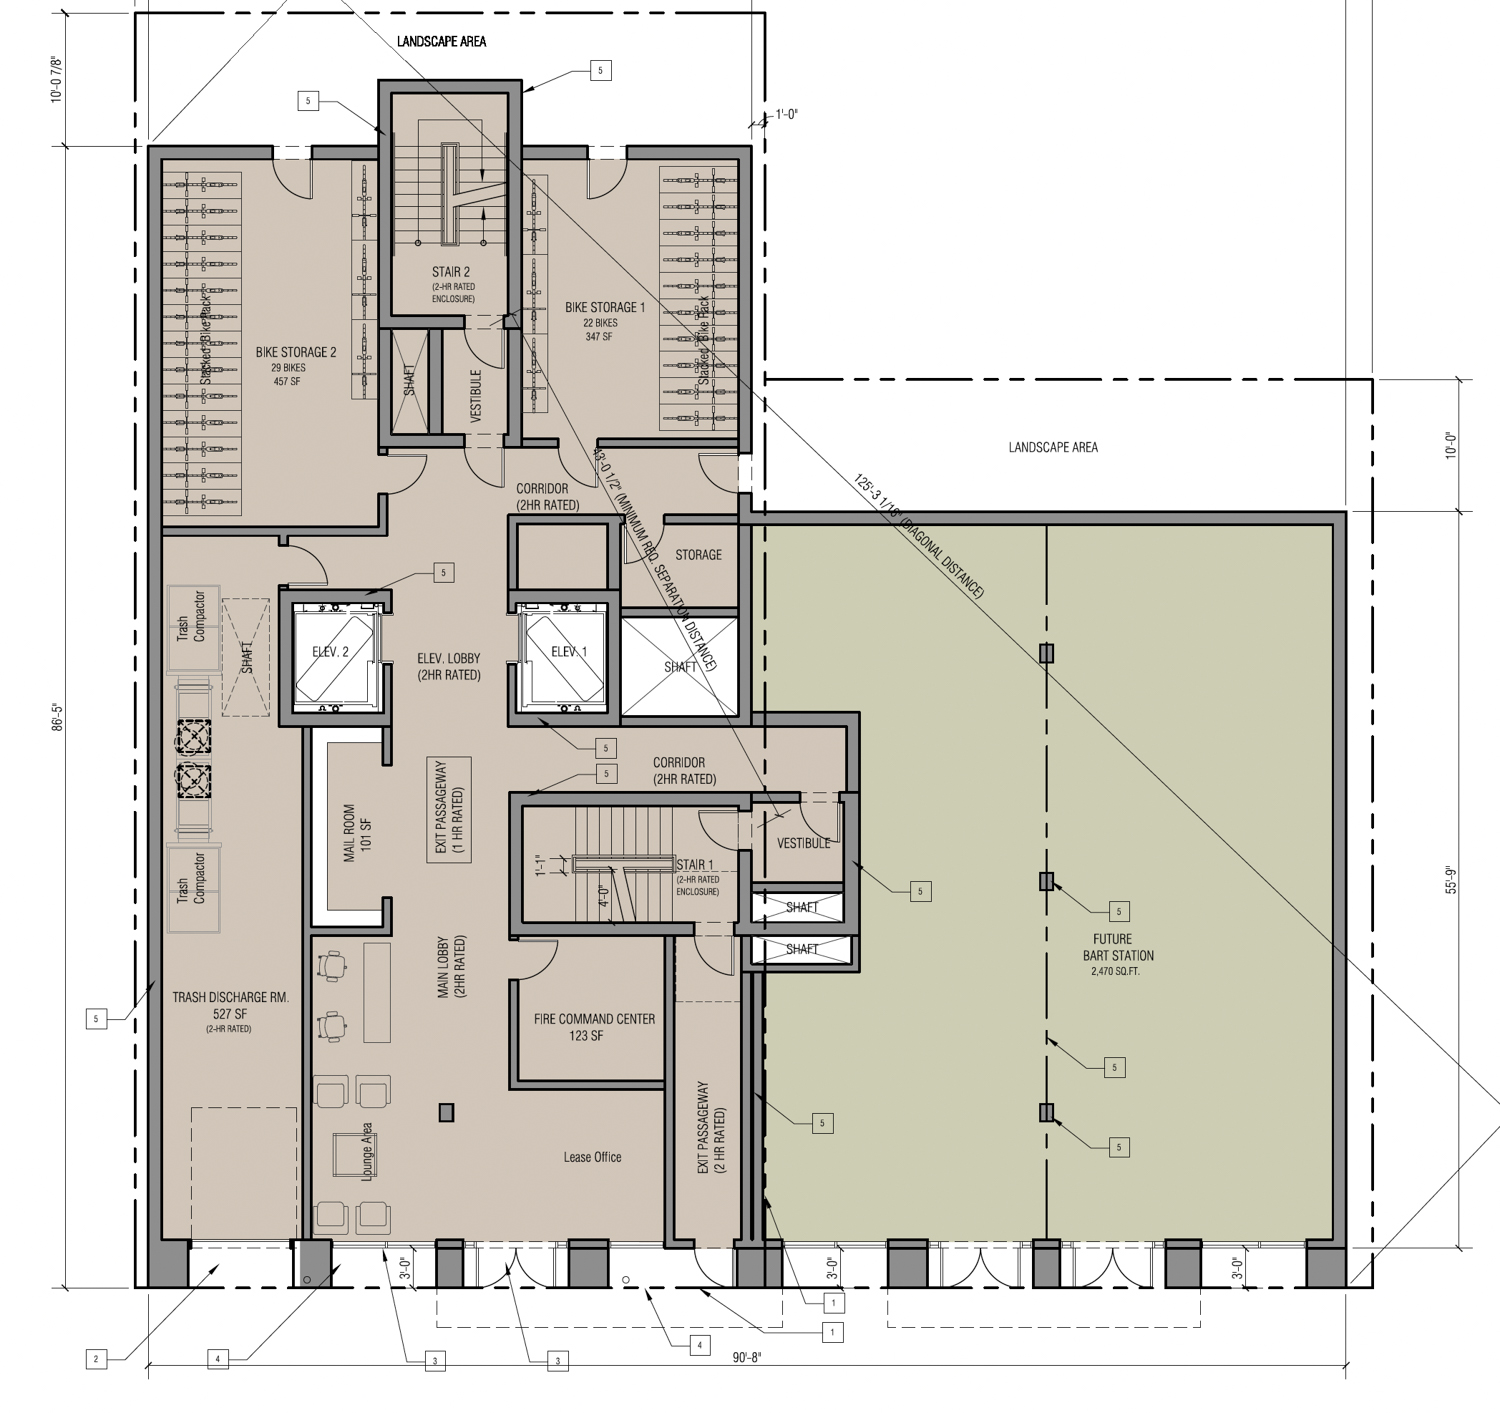 17 East Santa Clara Street first-level floor plan, rendering by Anderson Architects